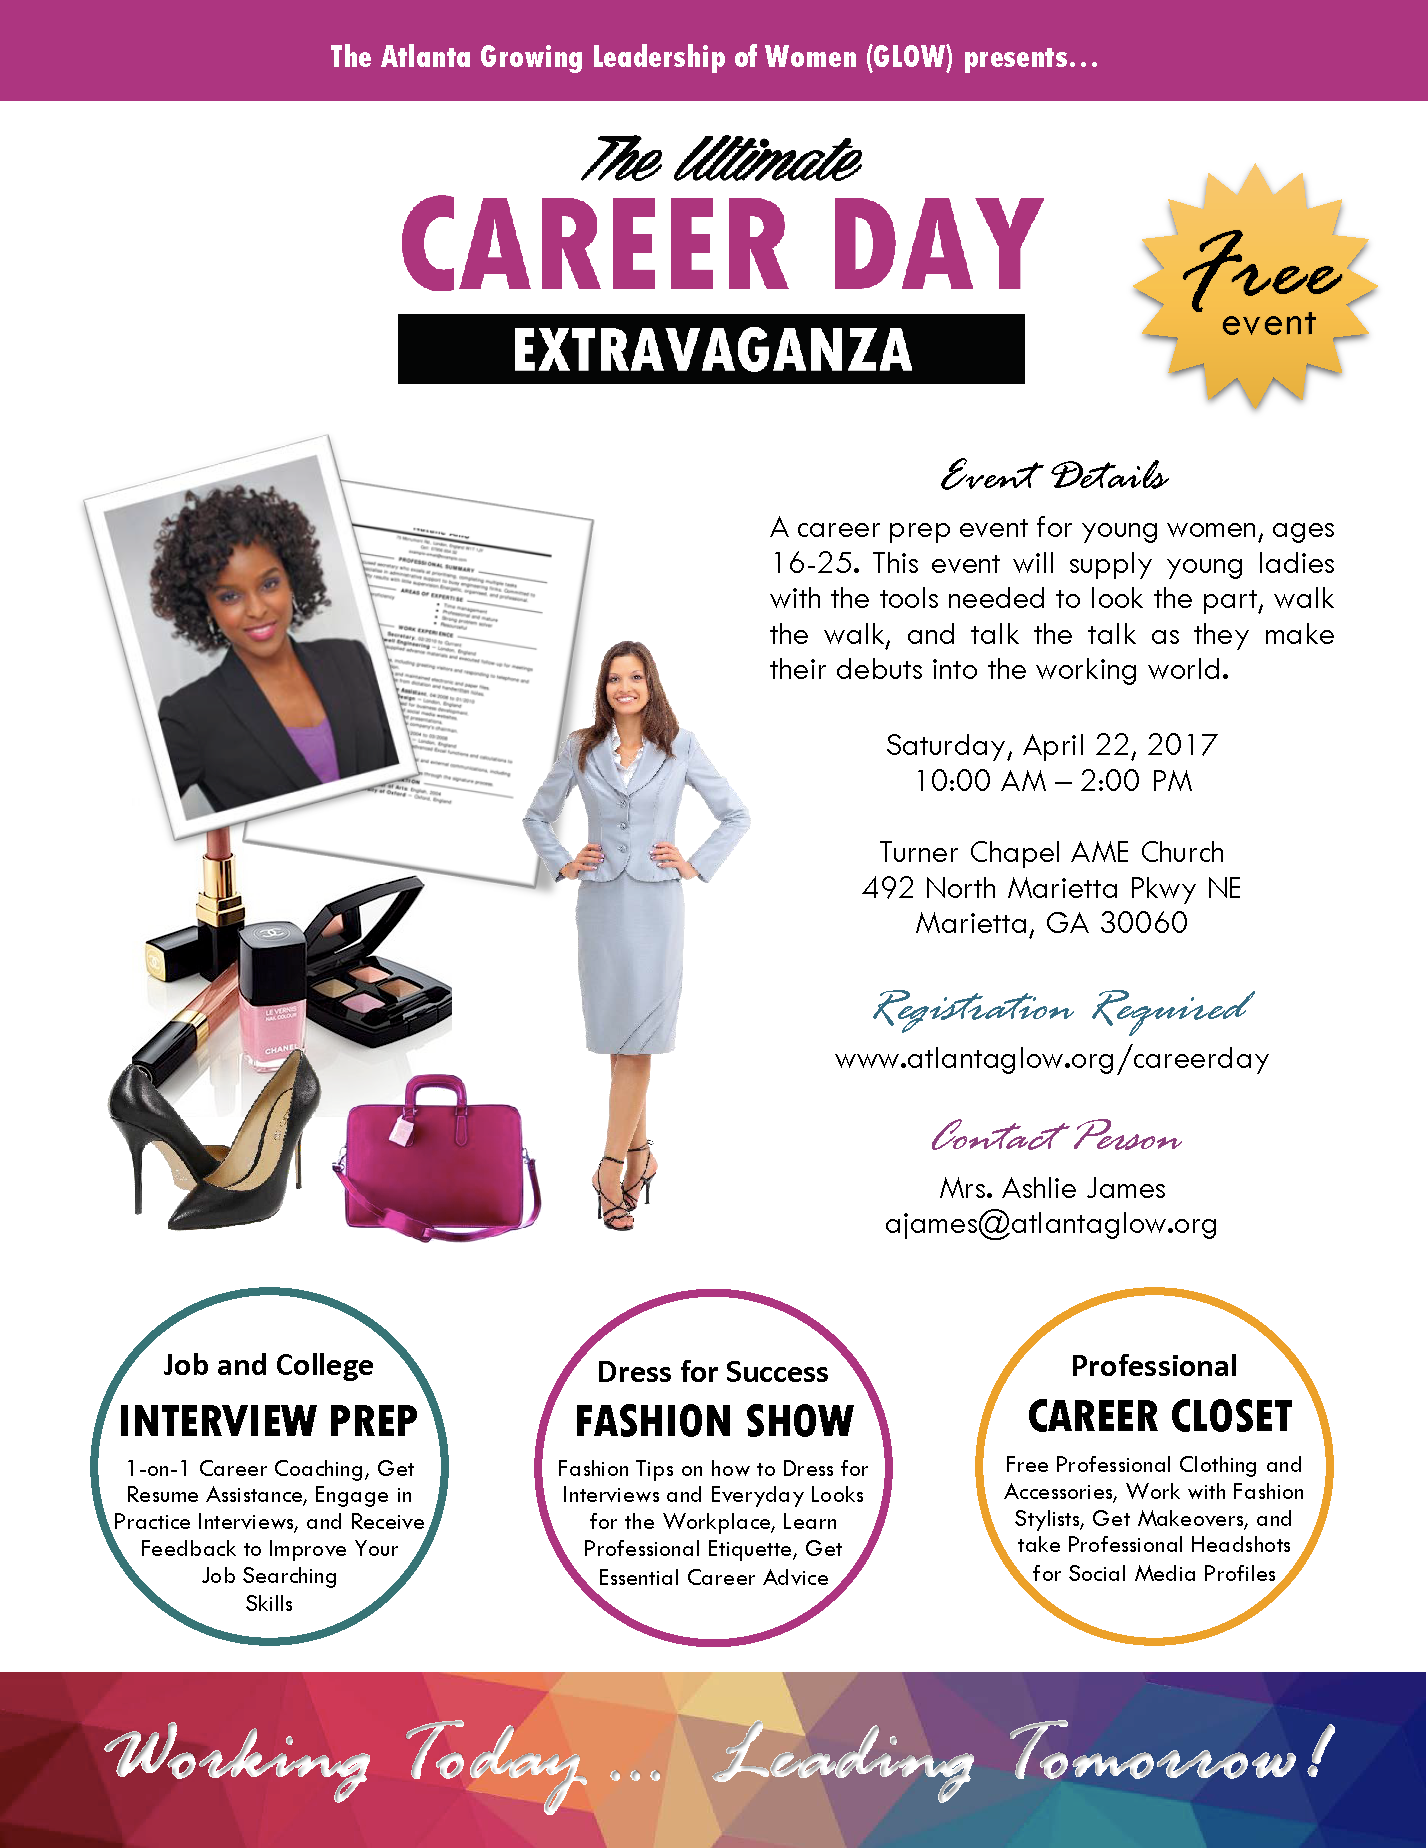 career day extravaganza registration sat apr 22 2017 at 10 00 entrepreneurship and or early career our programs are not just intended to get them there but also to equip them the support and tools they need